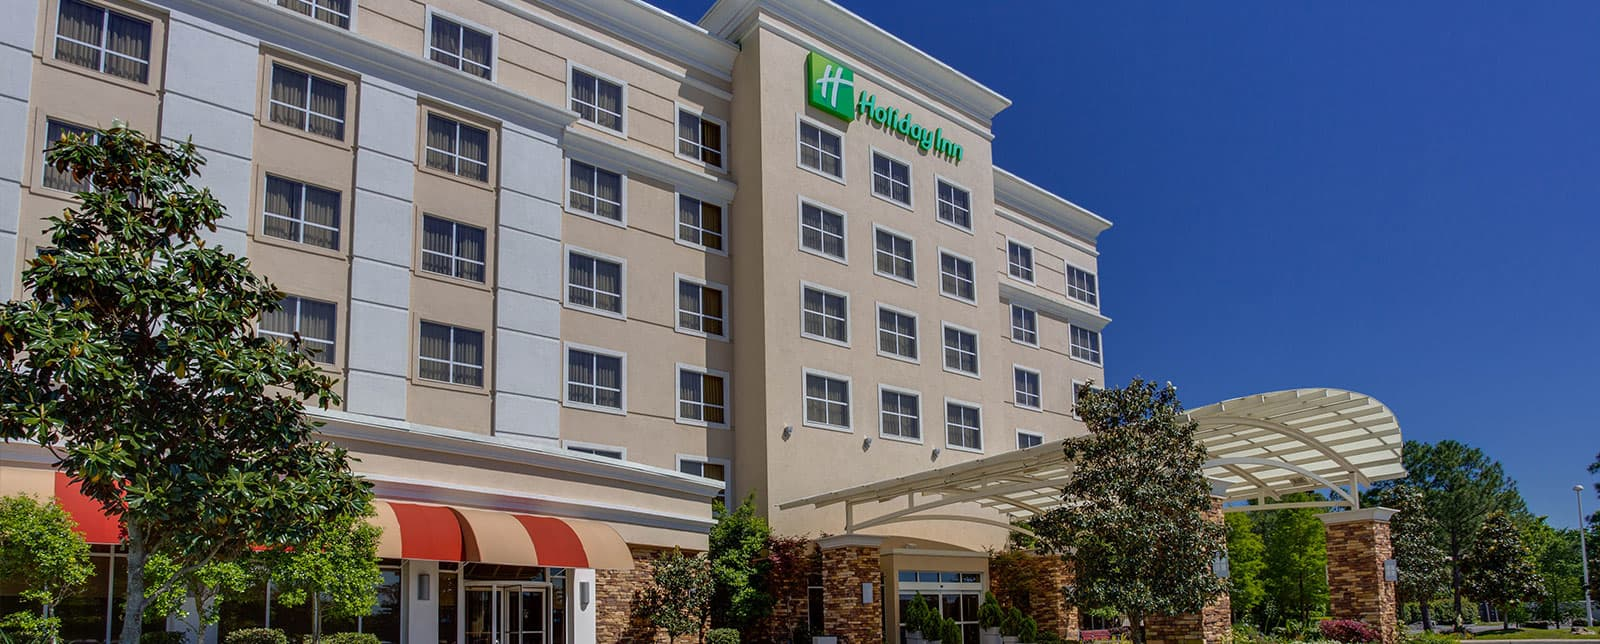 Holiday Inn Baton Rouge College Drive I-10 Hotel, Louisiana